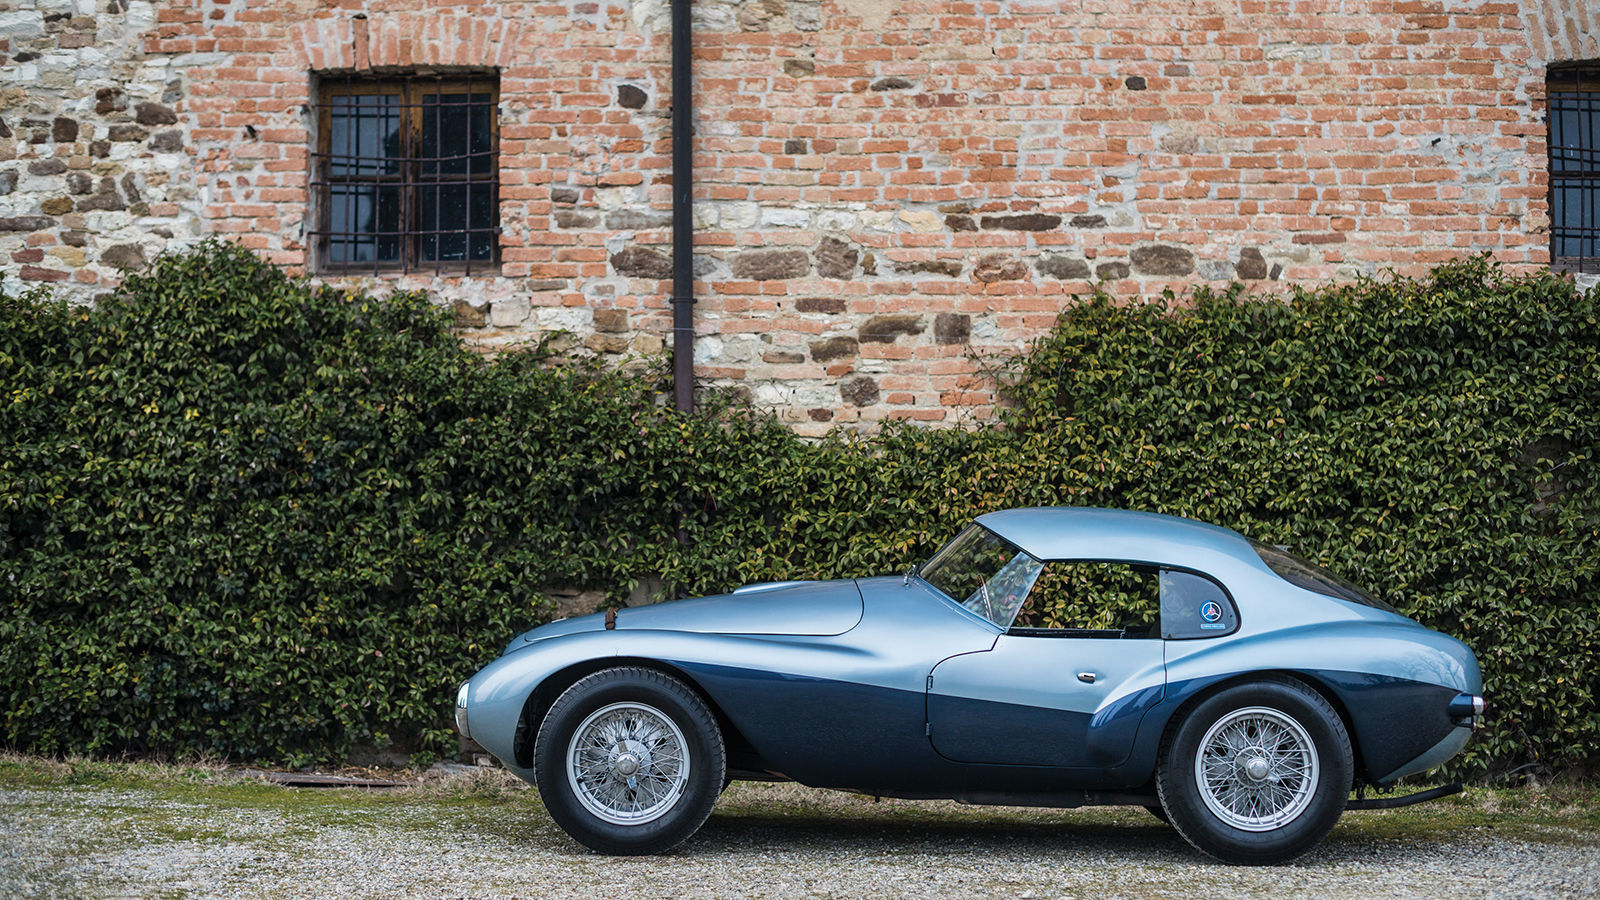 This Rare Ferrari Is Expected To Sell For $5.5 Million